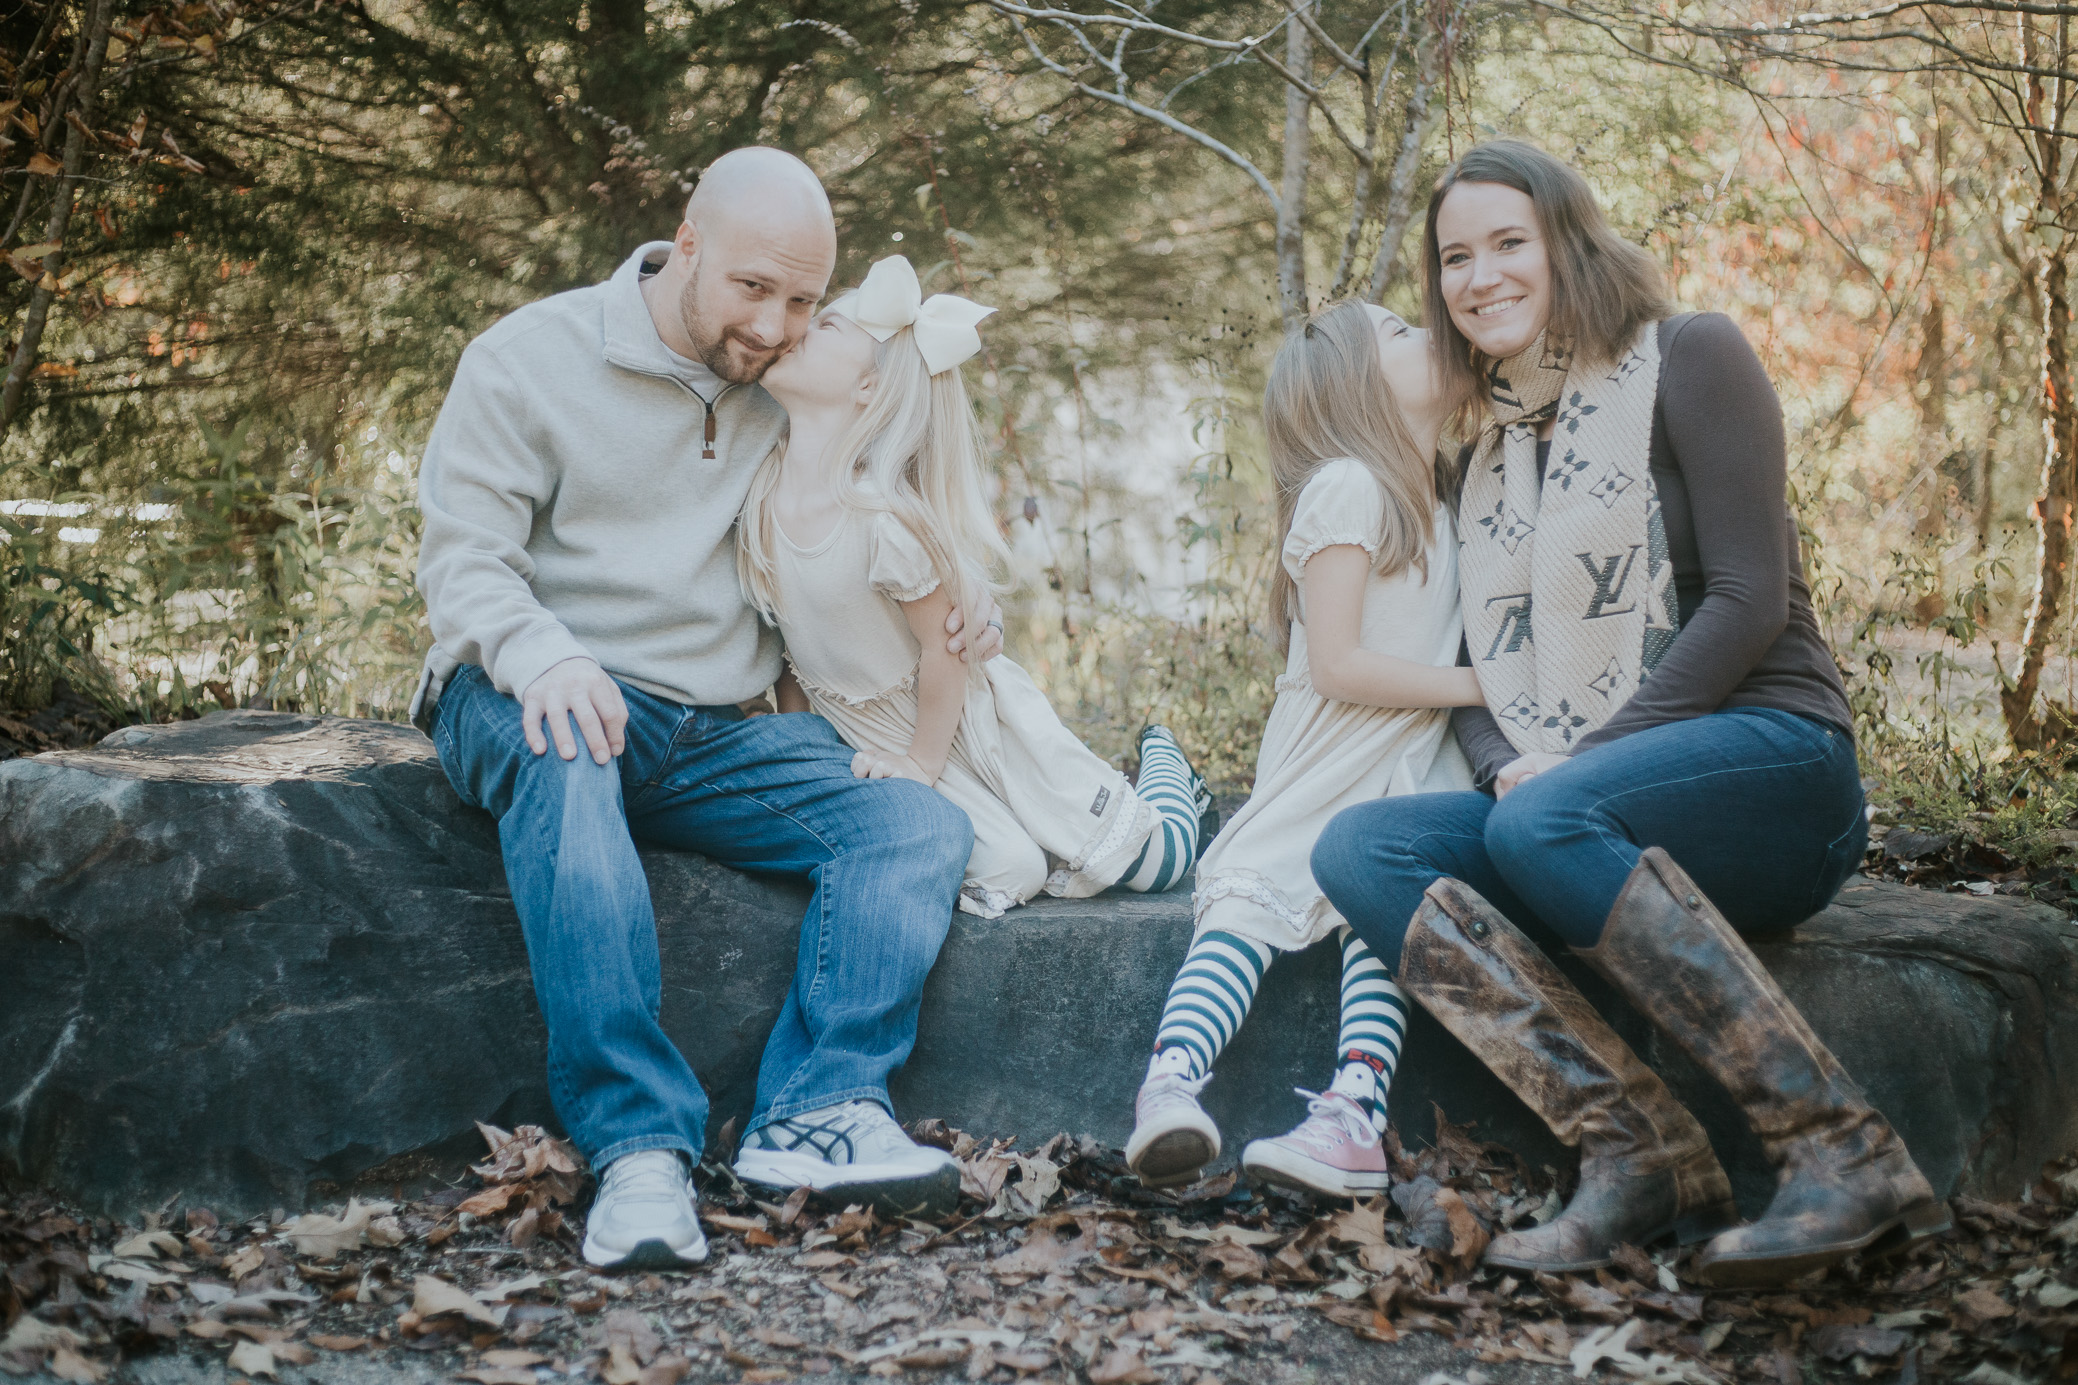 Family portraits at Turkey Creek Nature Preserve in PInson, Alabama by David A. Smith of DSmithImages Wedding Photography, Portraits, and Events, a portrait photographer in the Birmingham, Alabama area.